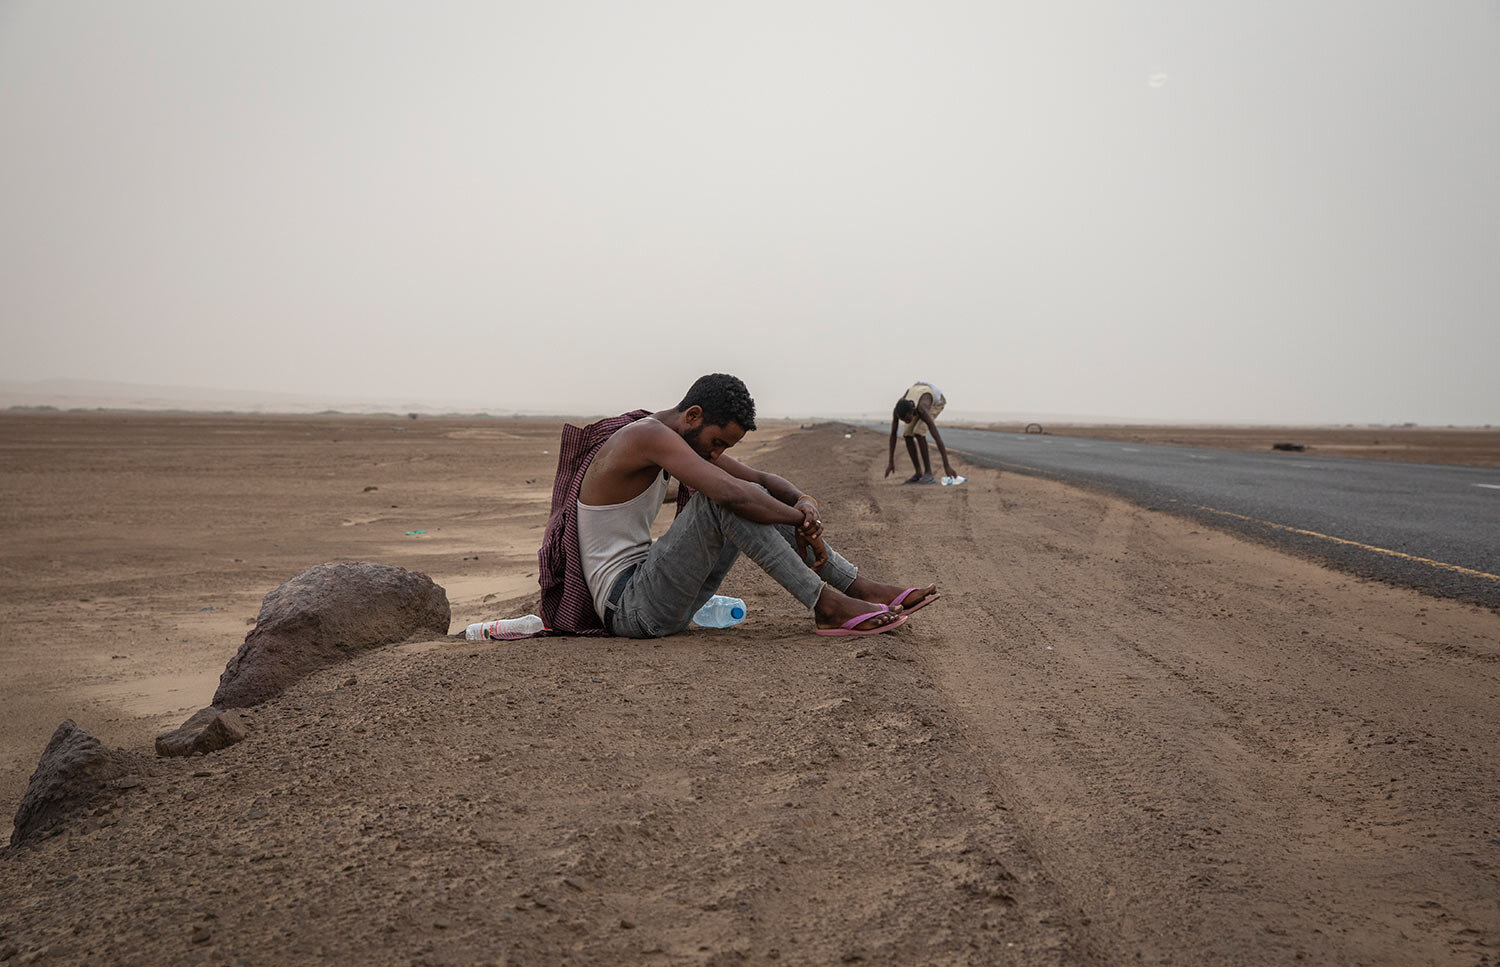 Ethiopian migrants rest on the side of a highway in Lahj, Yemen, early in the morning, as they make their way to Aden. (AP Photo/Nariman El-Mofty)